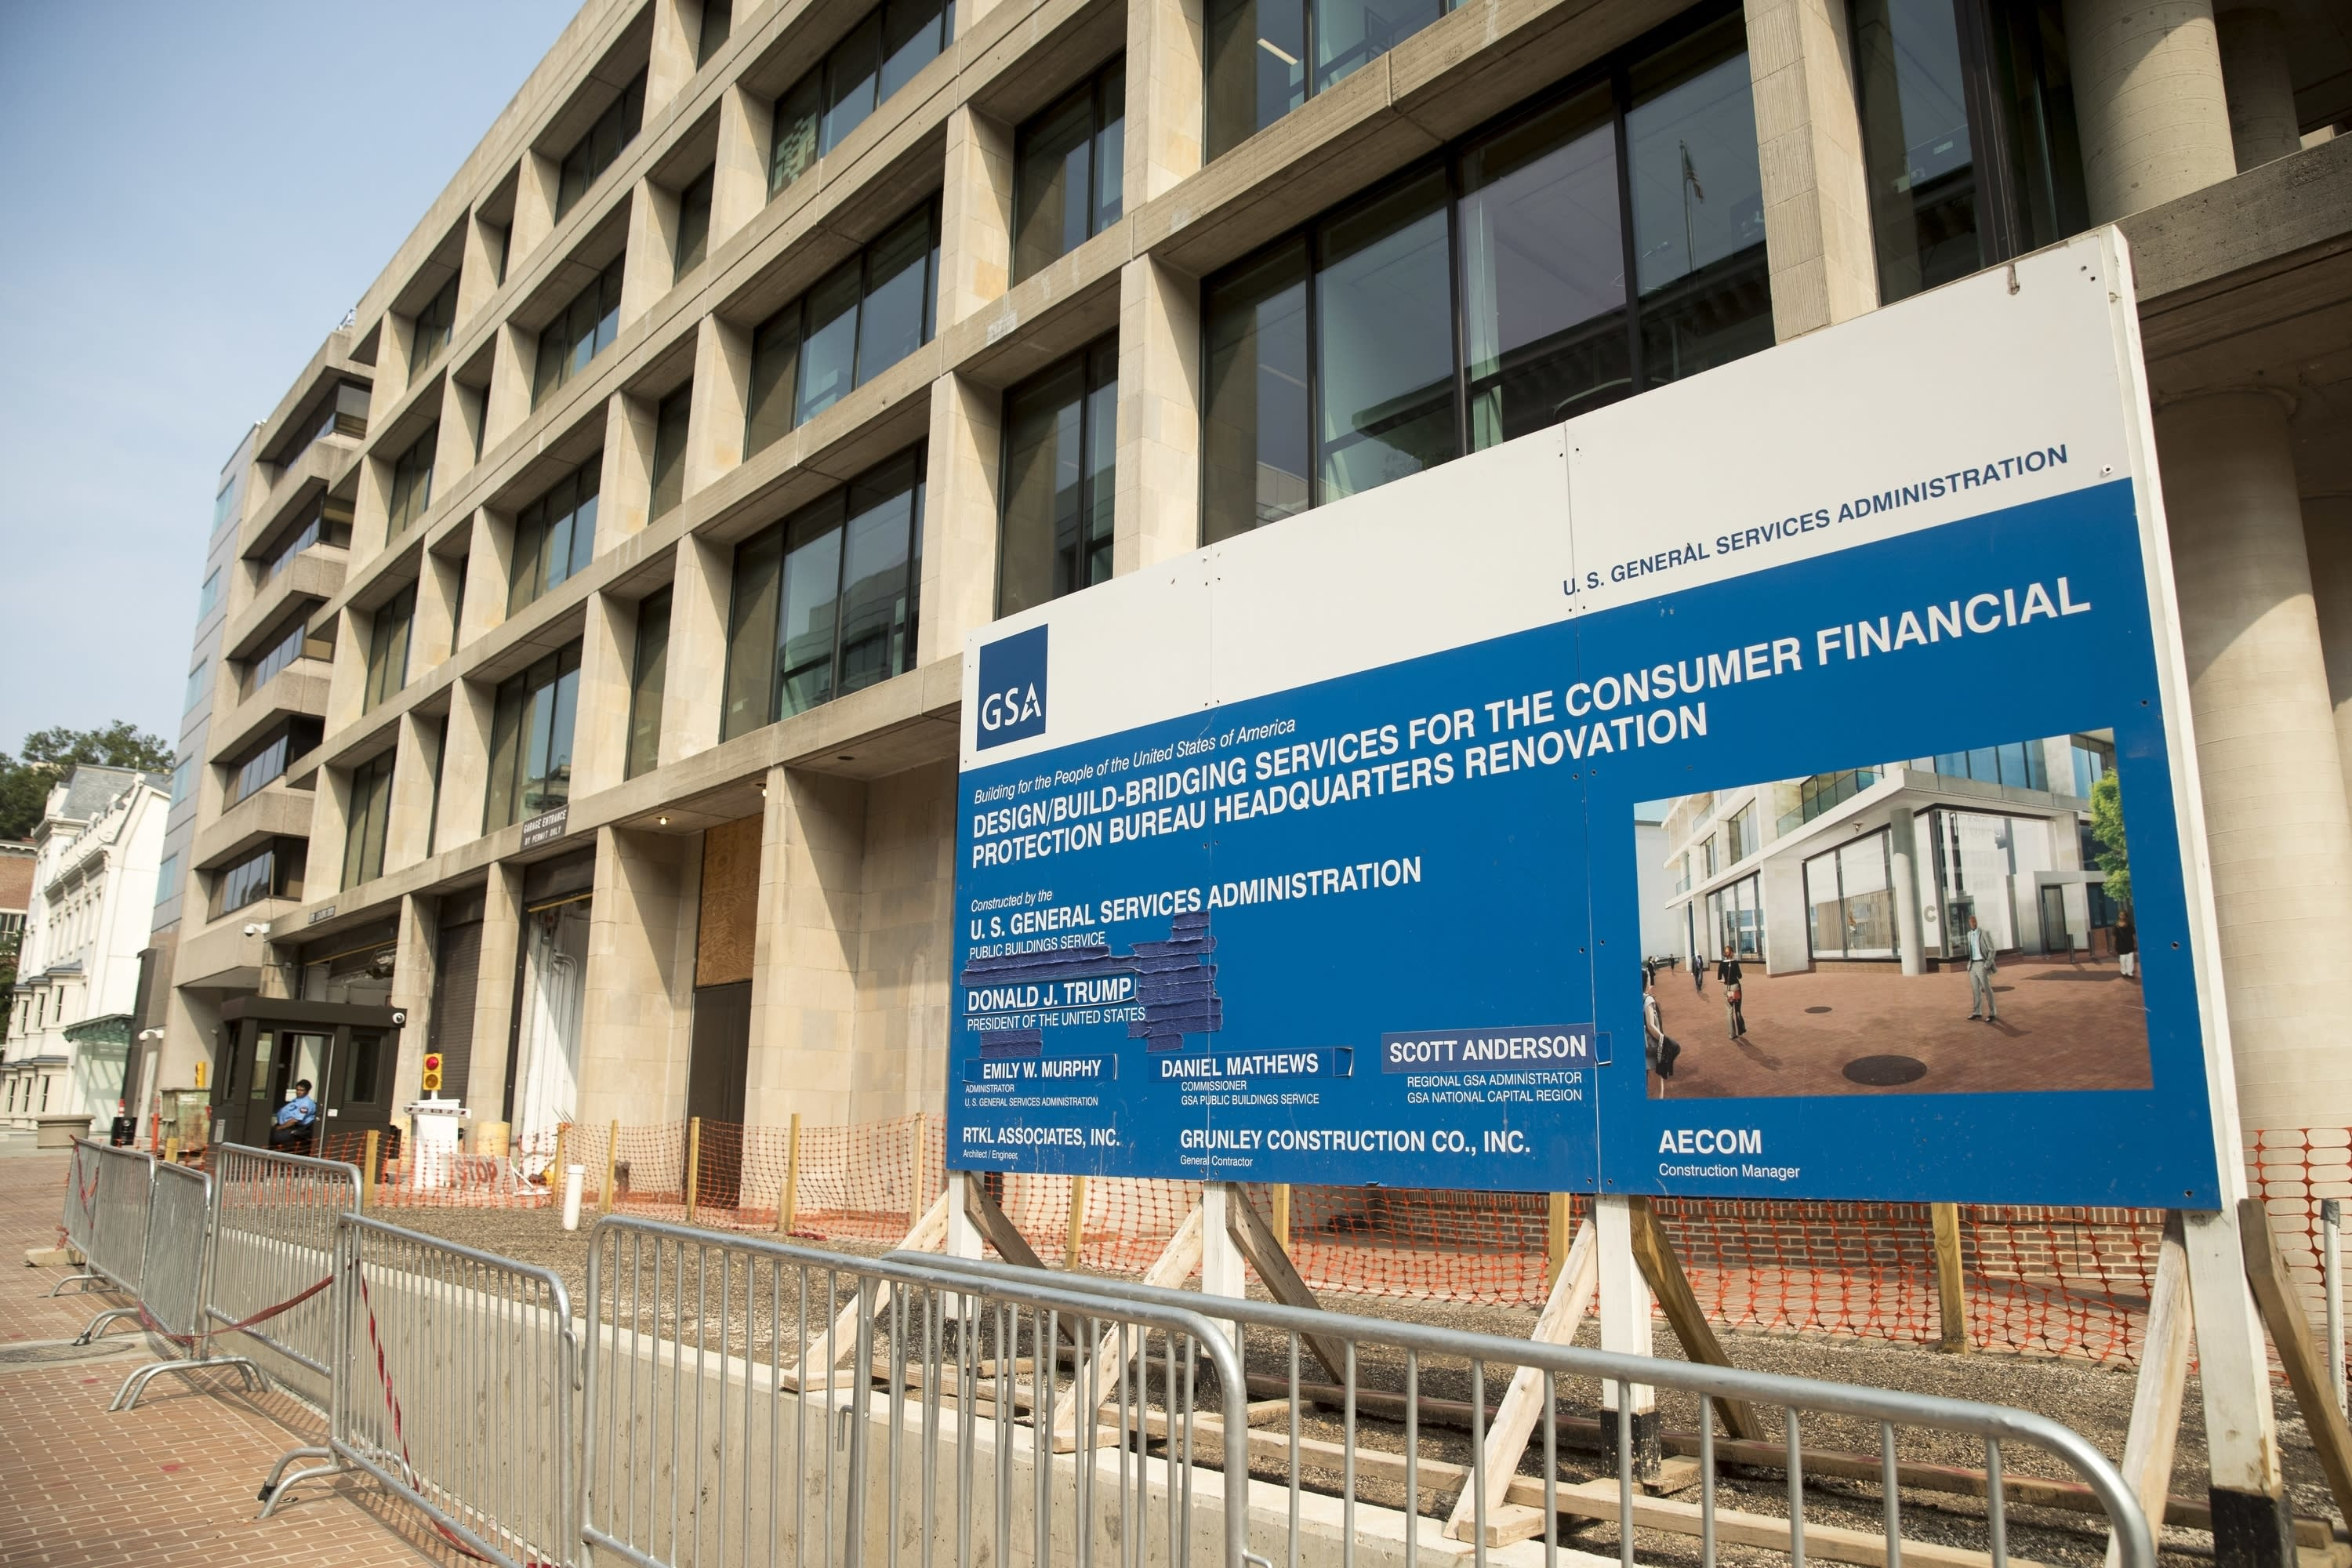 FILE - In this Aug. 27, 2018, file photo, a patched sign stands at the construction site for the Consumer Financial Protection Bureau's new headquarters in Washington. California created what supporters called its own nation-leading, state-level version of the federal Consumer Financial Protection Bureau after critics said the Trump administration significantly weakened national protections, Friday, Sept. 25, 2020. The legislation that Gov. Gavin Newsom signed into law changes the existing Department of Business Oversight into the Department of Financial Protection and Innovation in what proponents said is the first such move by any state. (AP Photo/Andrew Harnik, File)